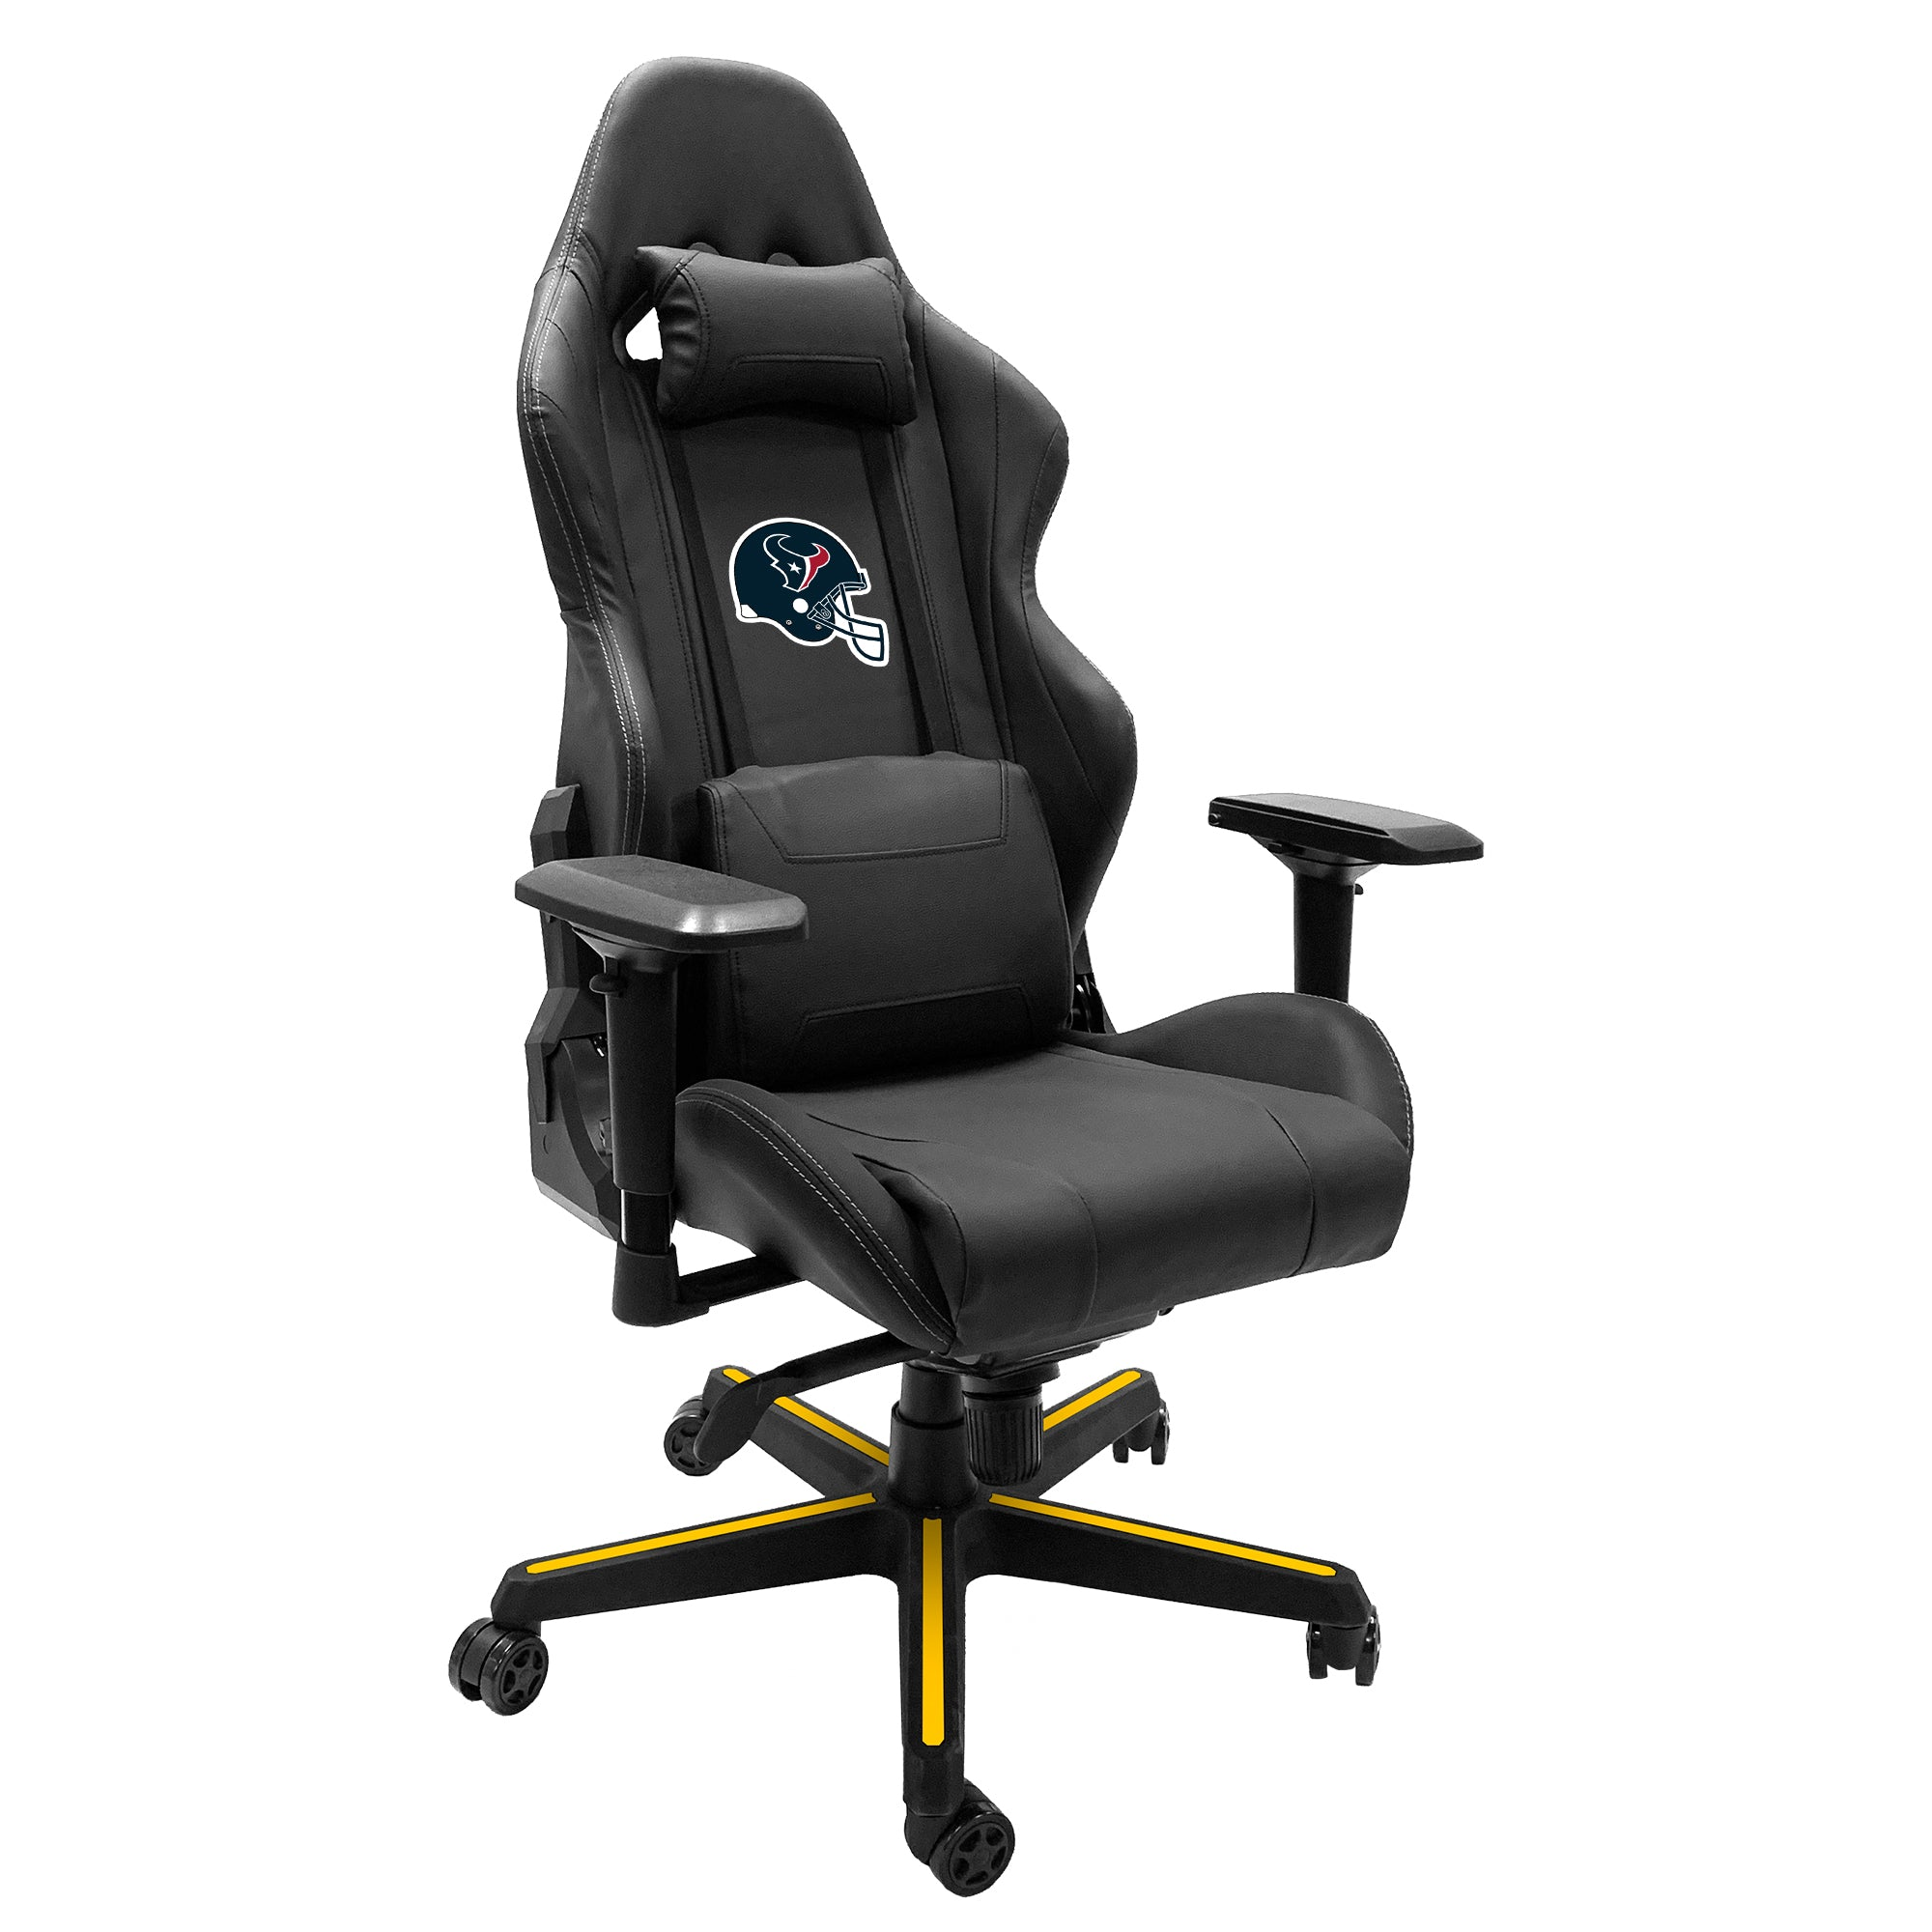 Xpression Gaming Chair with  Houston Texans Helmet Logo